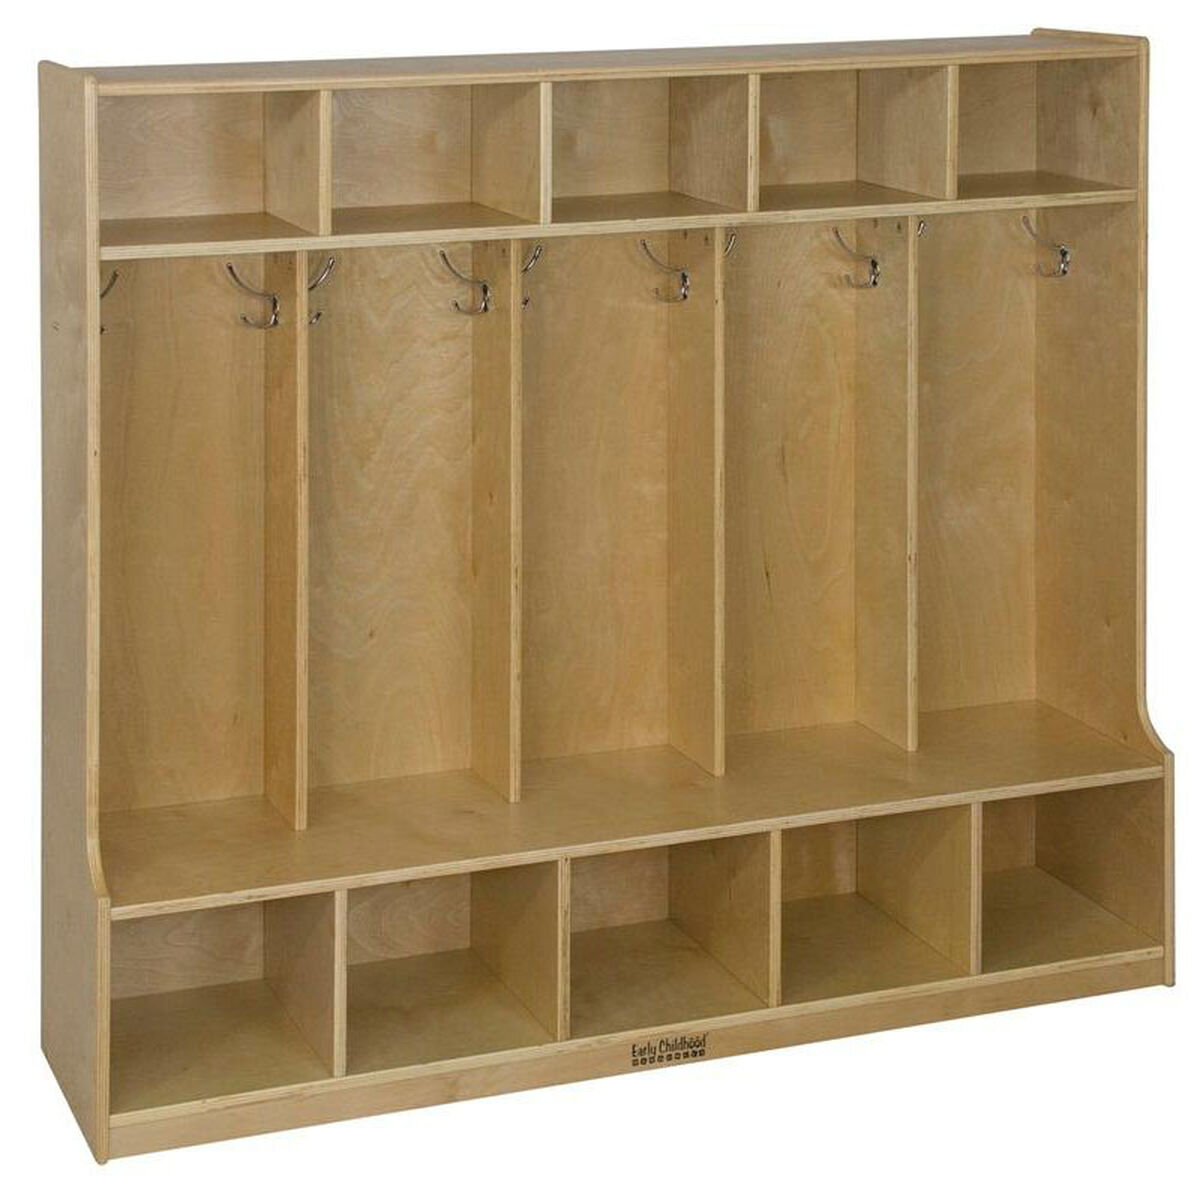 Our Birch Hardwood Five Section 10 Hook Coat Locker With Bench And Cubbies Is On